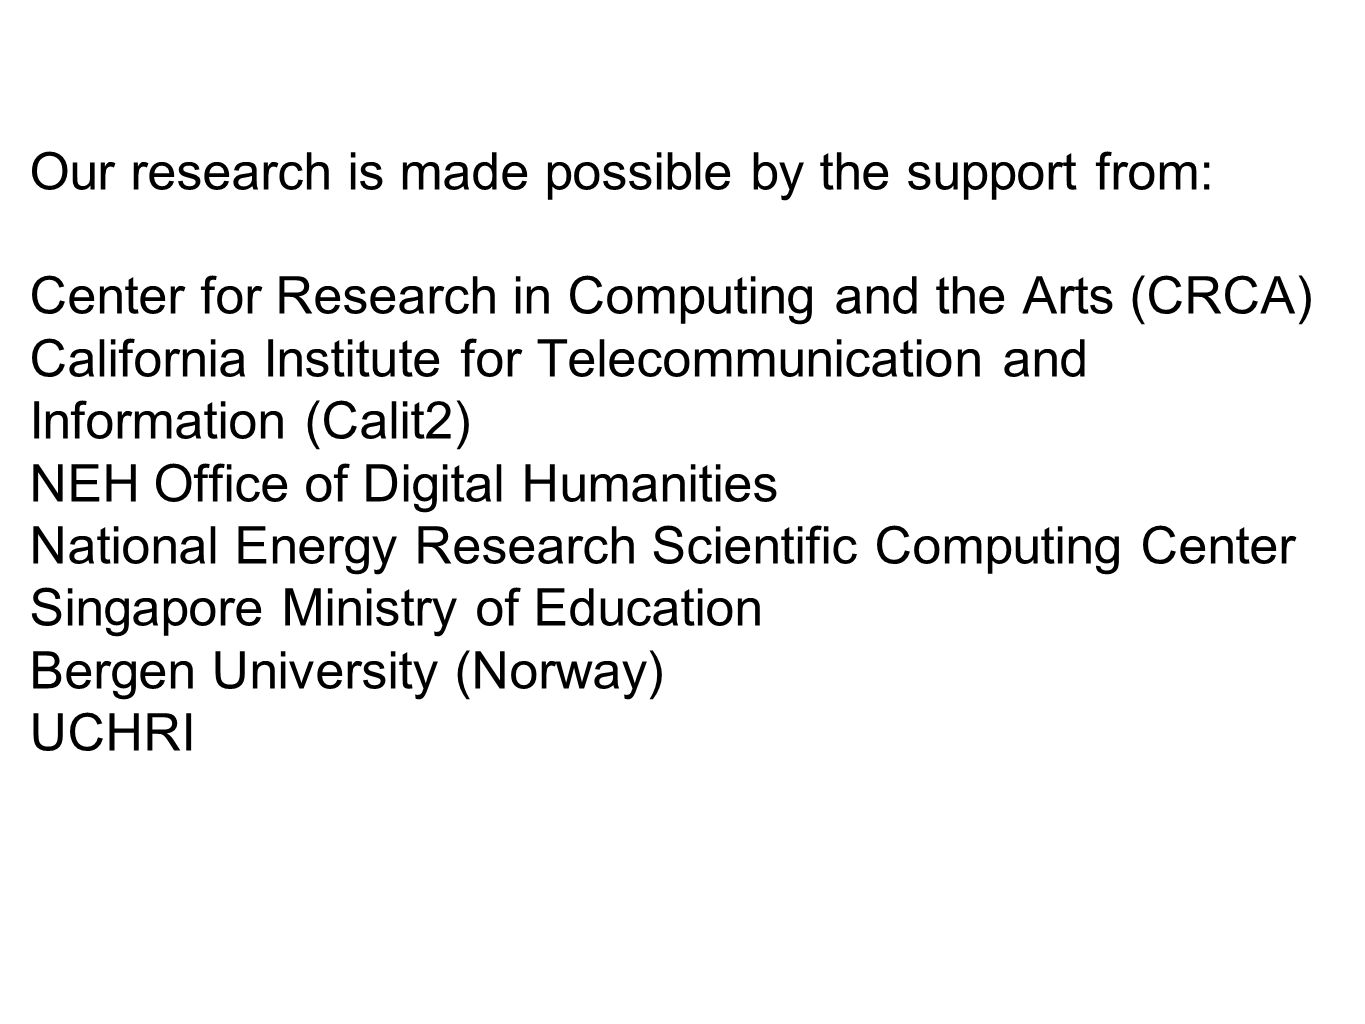 Our research is made possible by the support from: Center for Research in Computing and the Arts (CRCA) California Institute for Telecommunication and Information (Calit2) NEH Office of Digital Humanities National Energy Research Scientific Computing Center Singapore Ministry of Education Bergen University (Norway) UCHRI